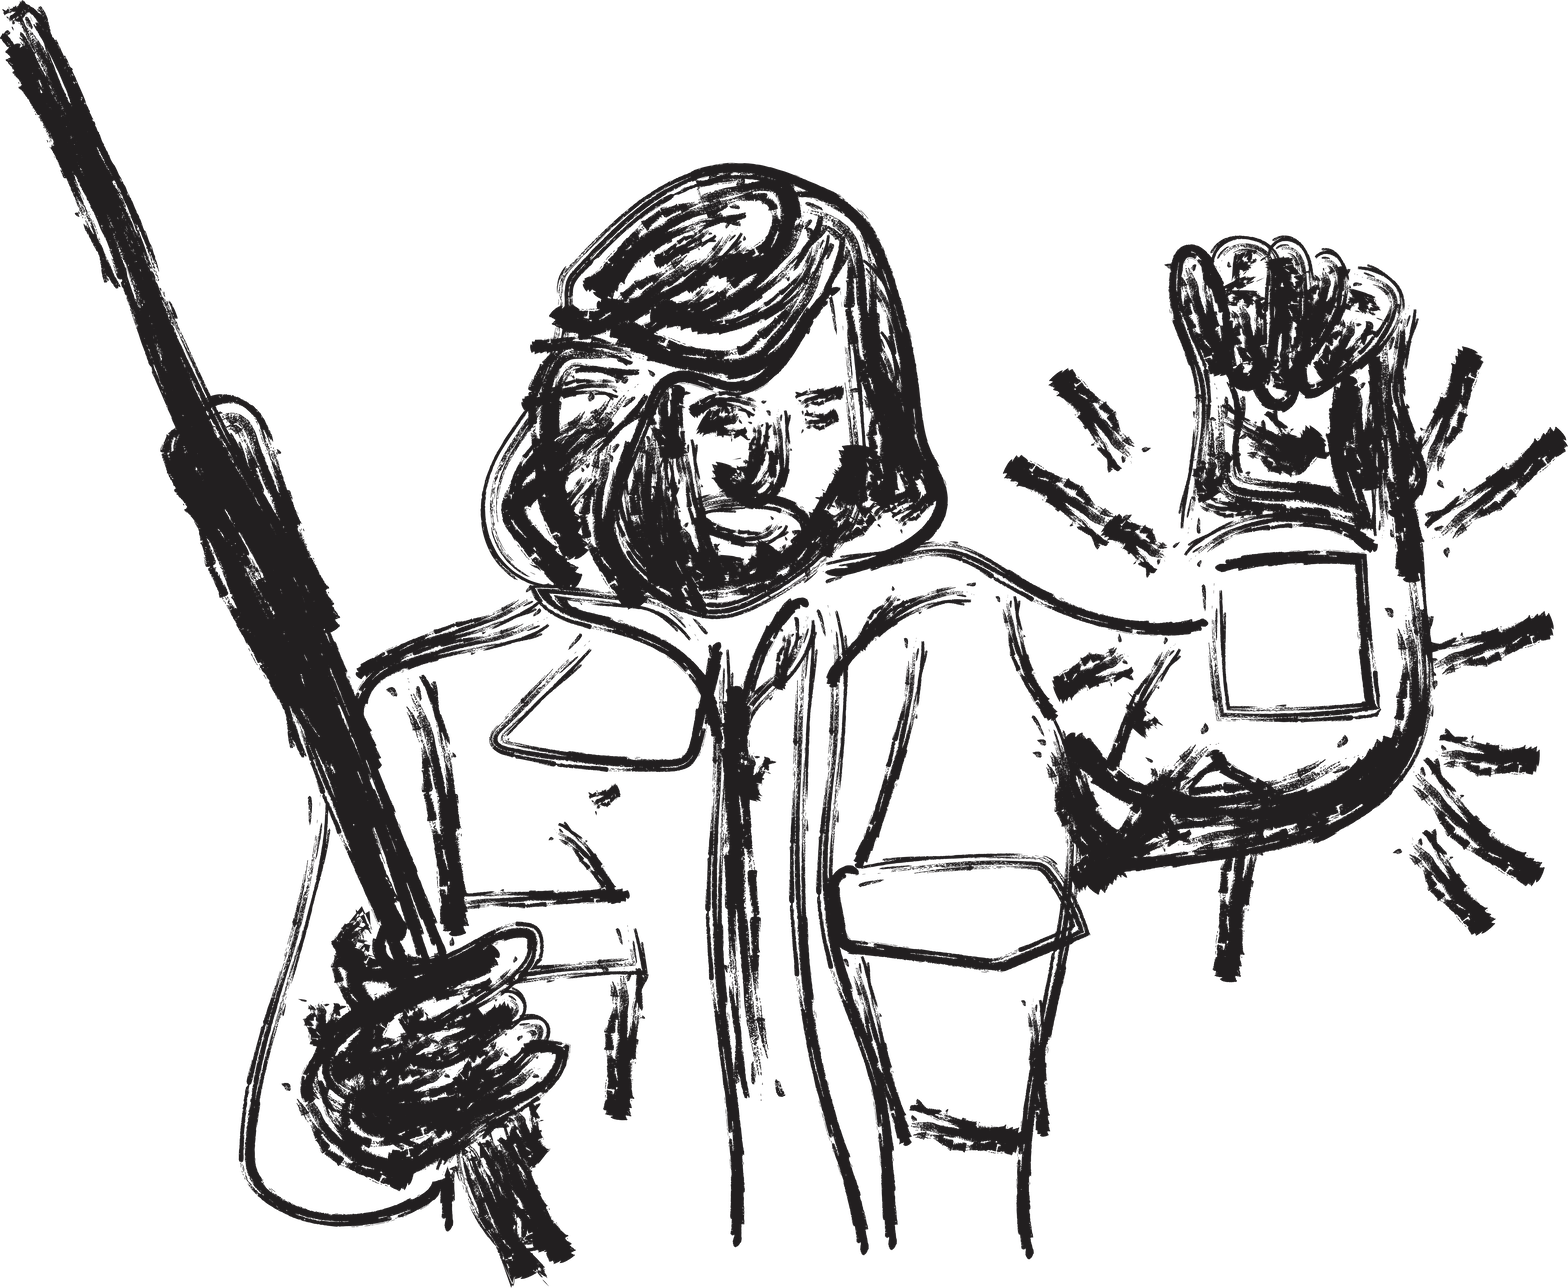 An artistic interpretation of MacReady from The Thing (1982) holding a latern and a rifle.